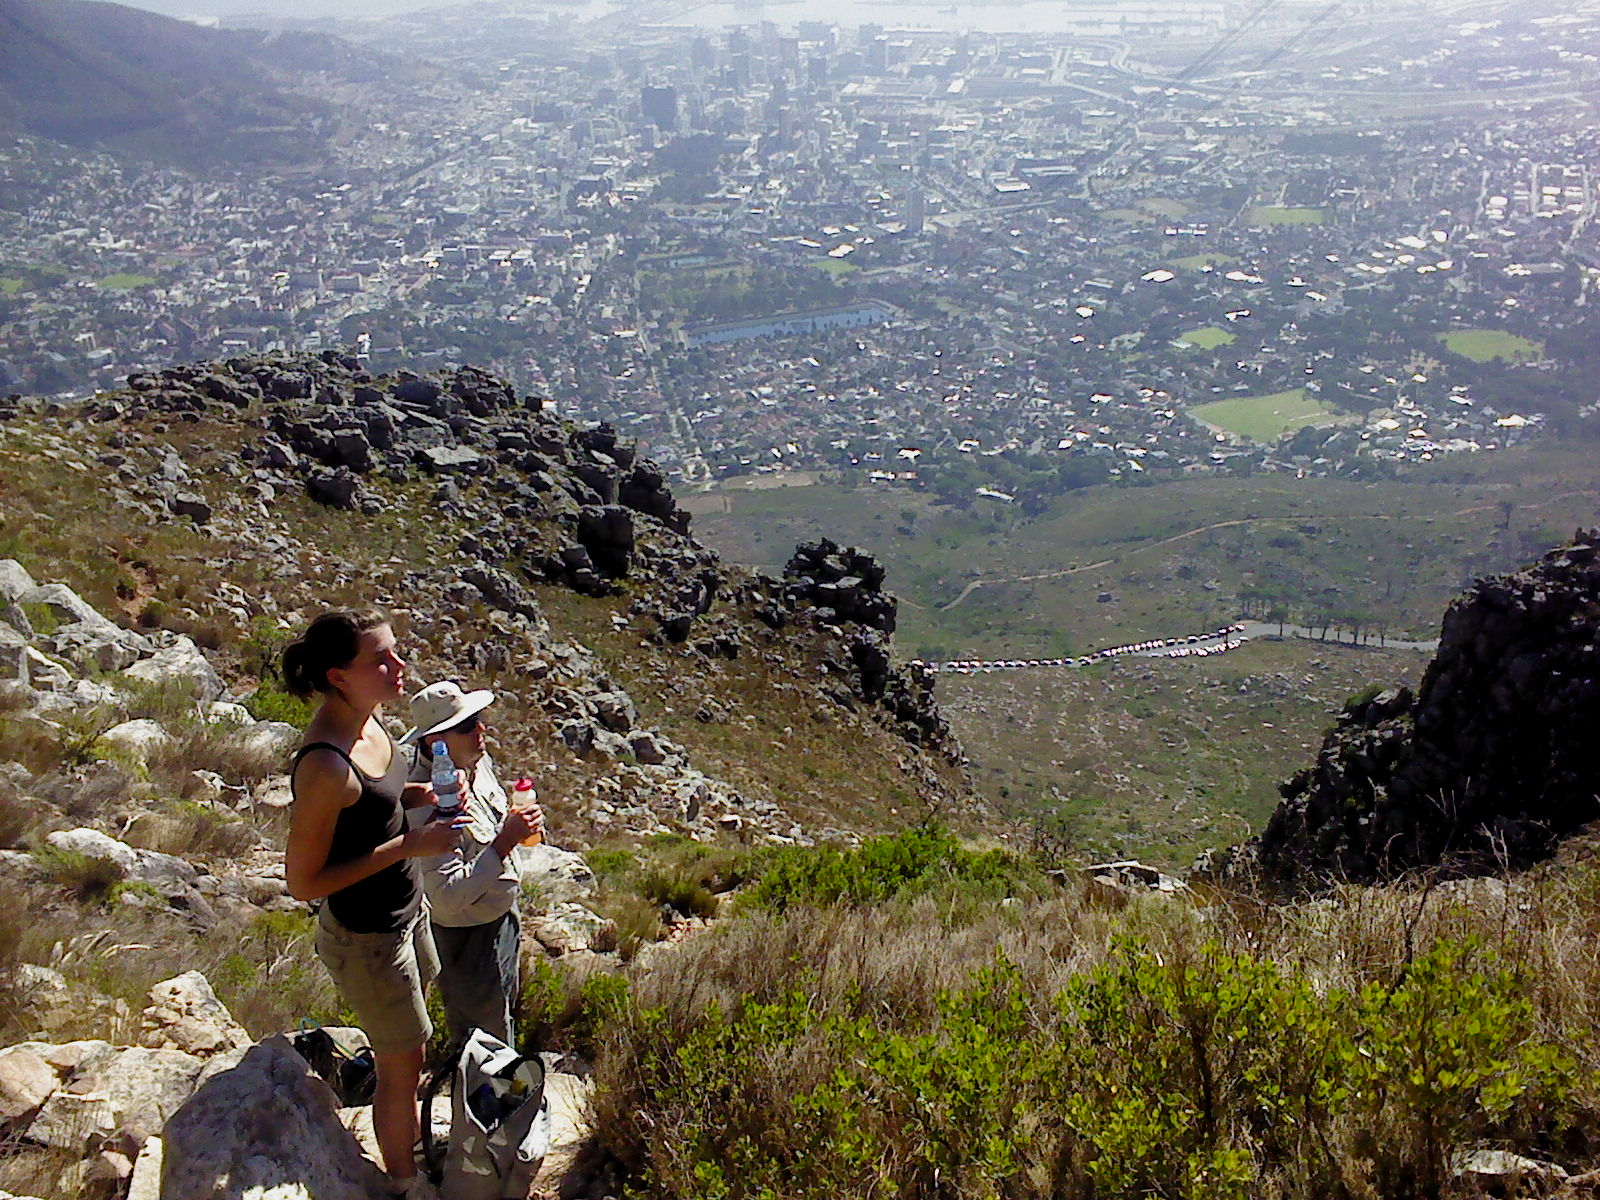 The india venster path Table Mountain